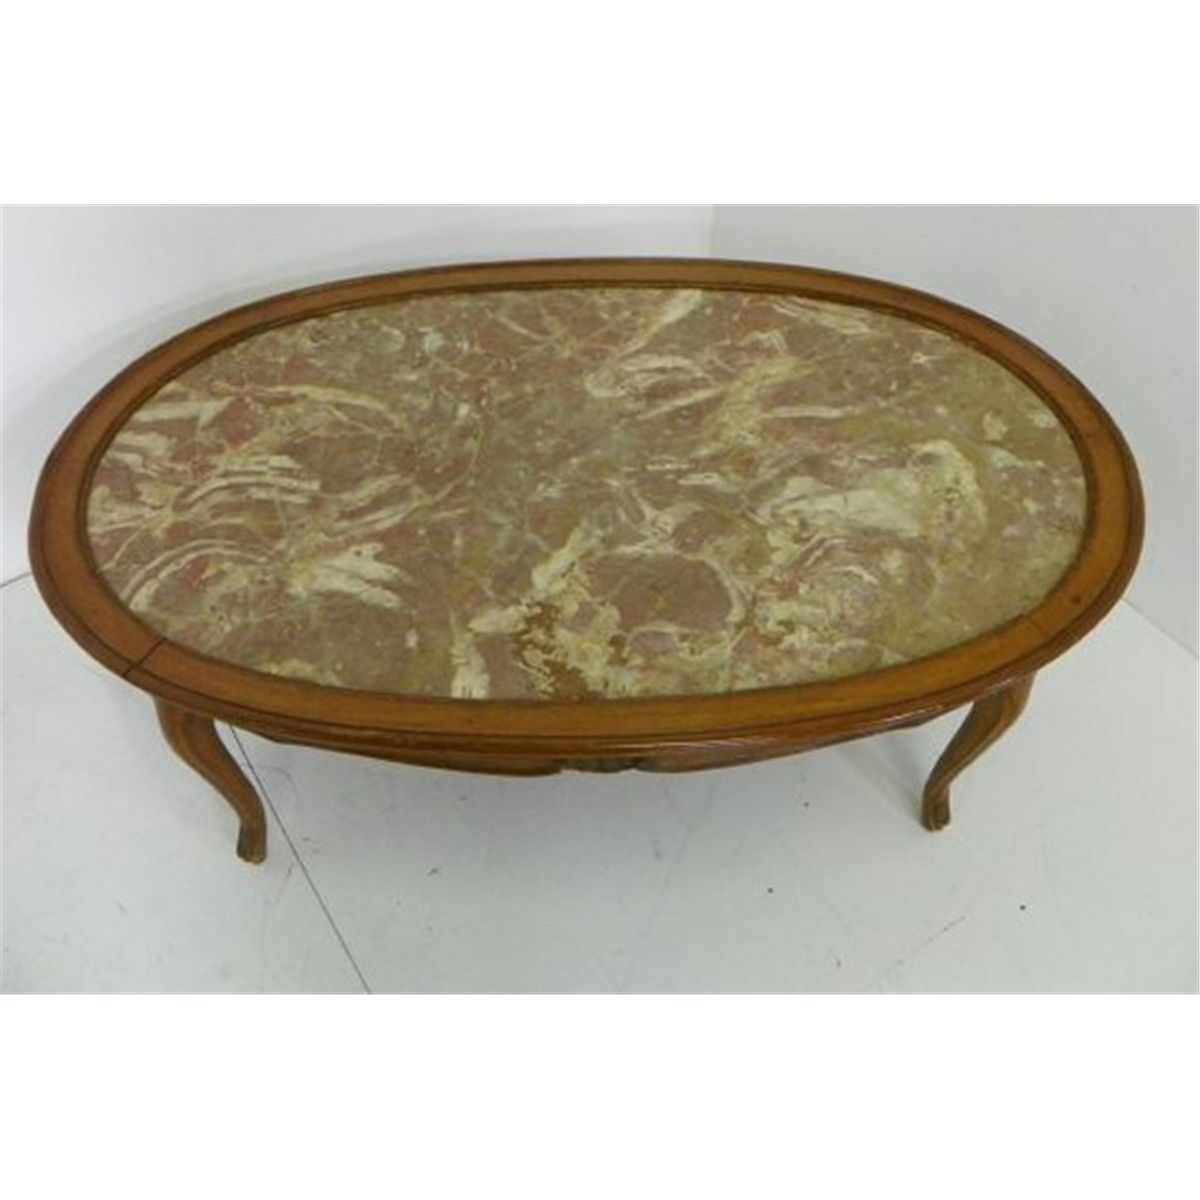 French Provincial Oval Coffee Table: Country French Marble Top Oval Coffee Table